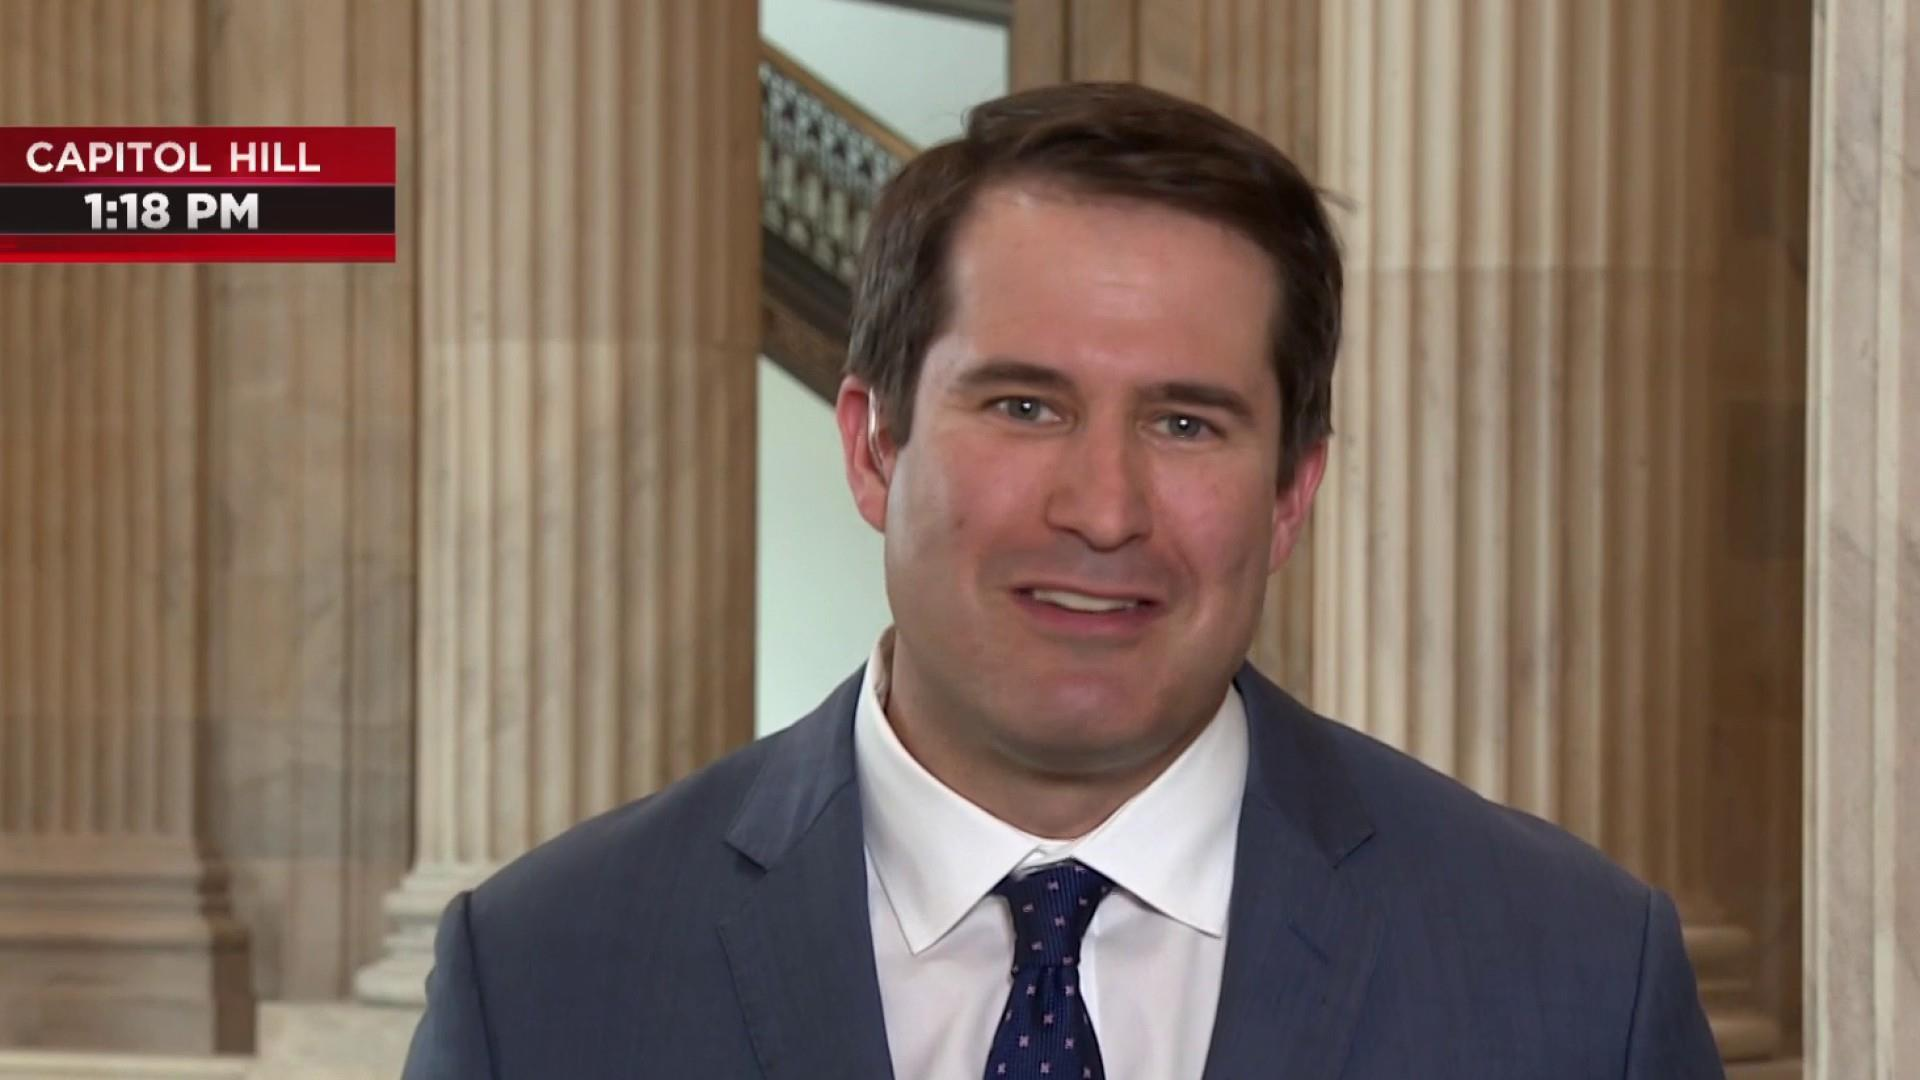 Rep. Seth Moulton: Voters want a Commander in Chief they can actually trust